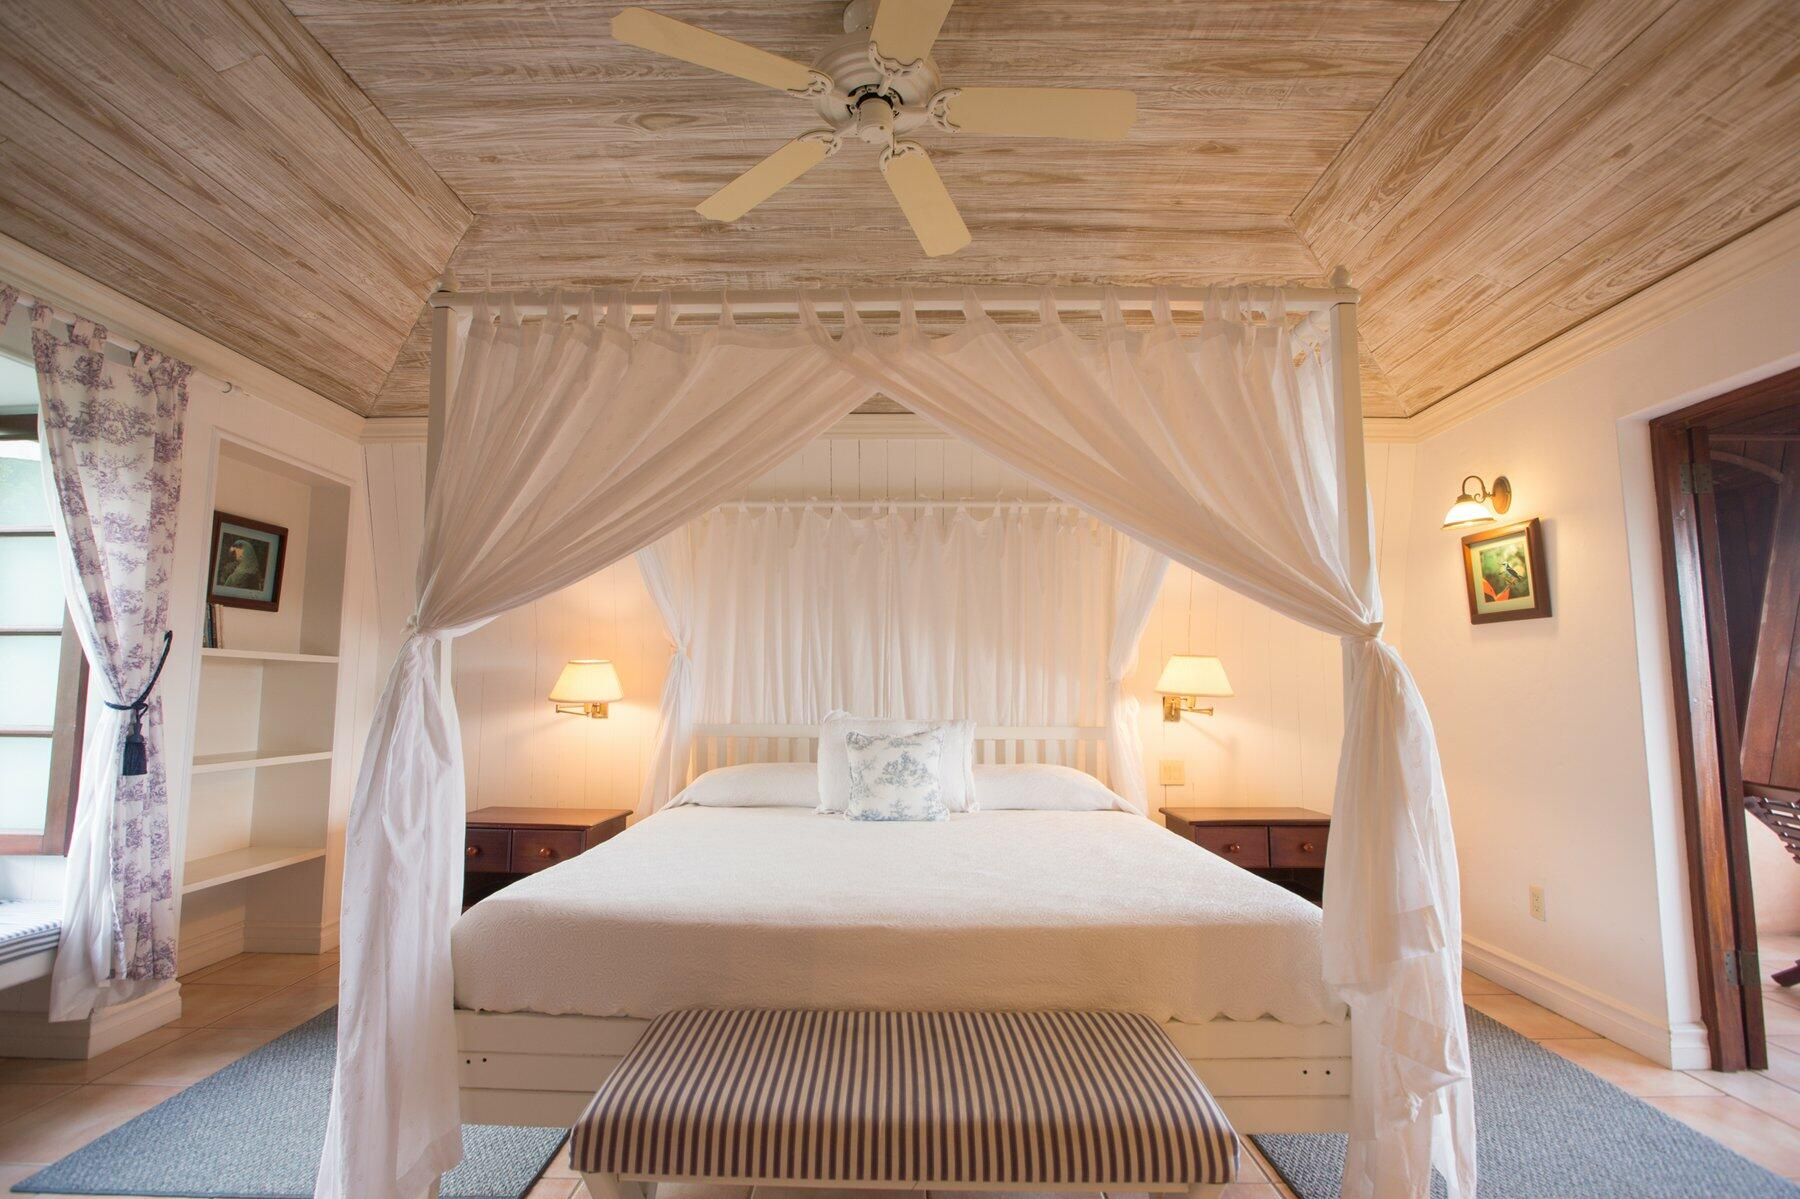 King-size canopy bed with ocean view